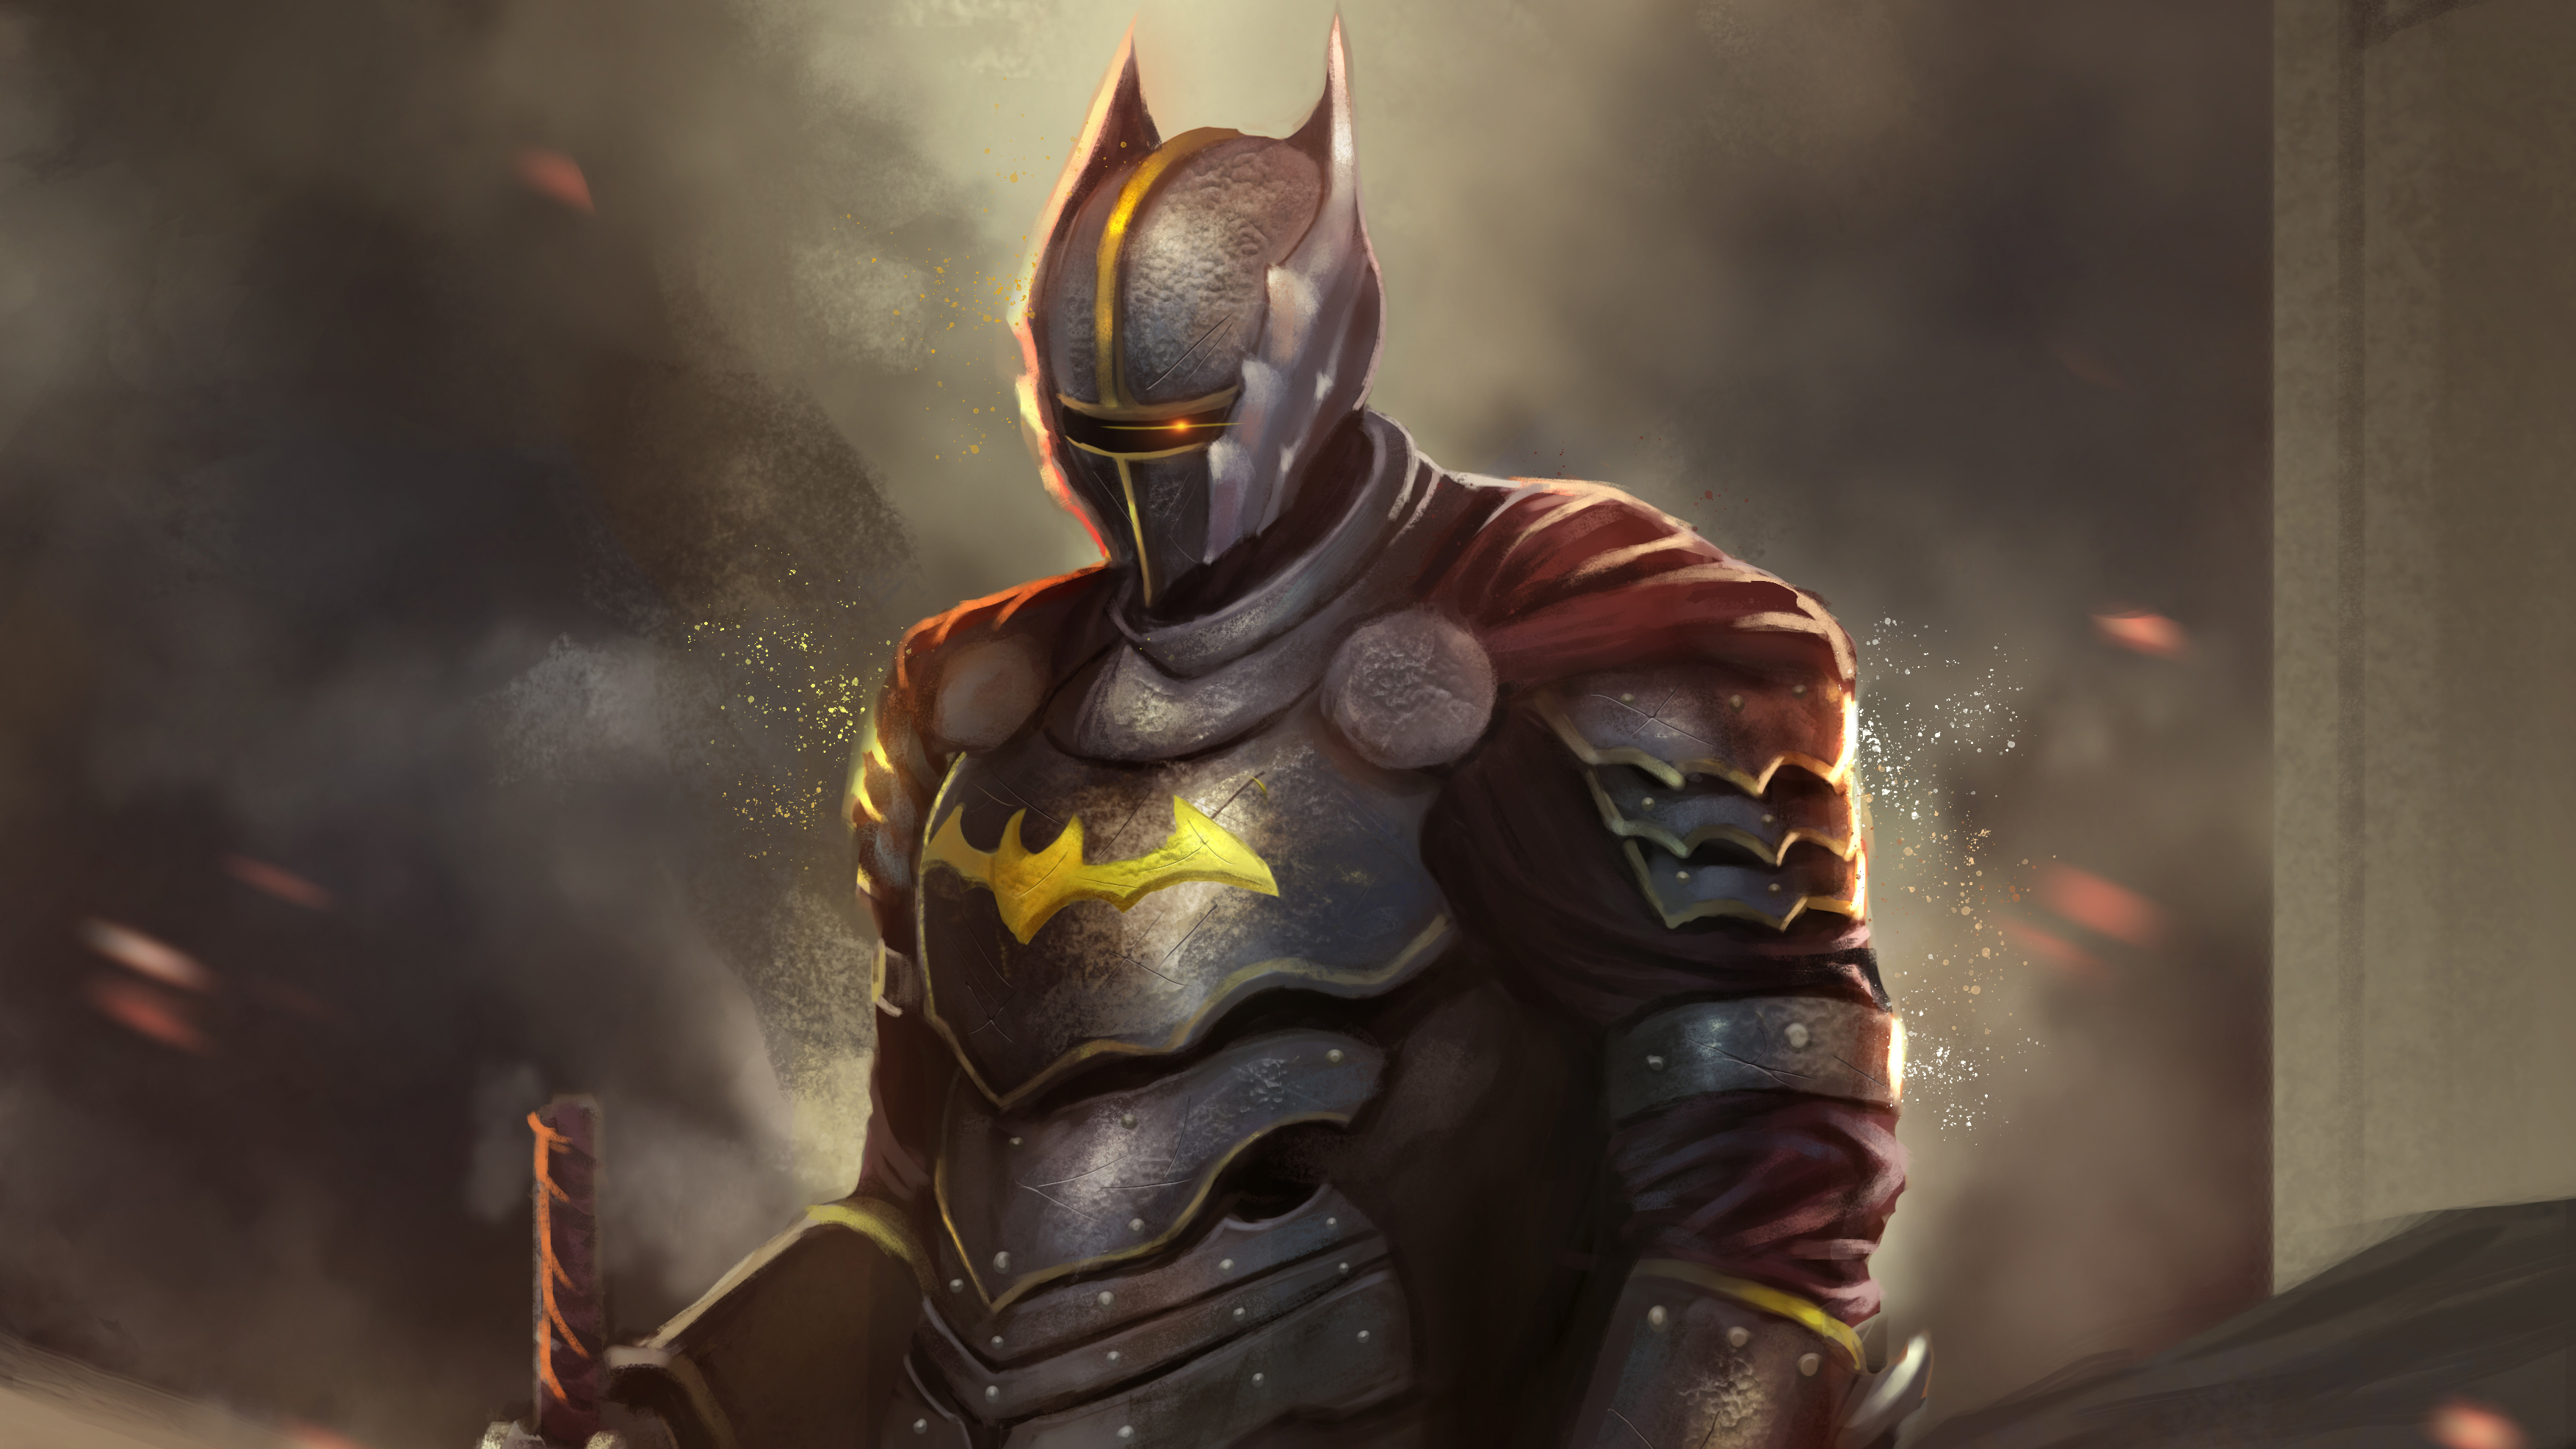 General 3508x1973 digital digital art artwork drawing painting digital painting fantasy art knight warrior fantasy warrior Batman DC Comics DC Universe medieval Batman: The Dark Knight The Dark Knight superhero